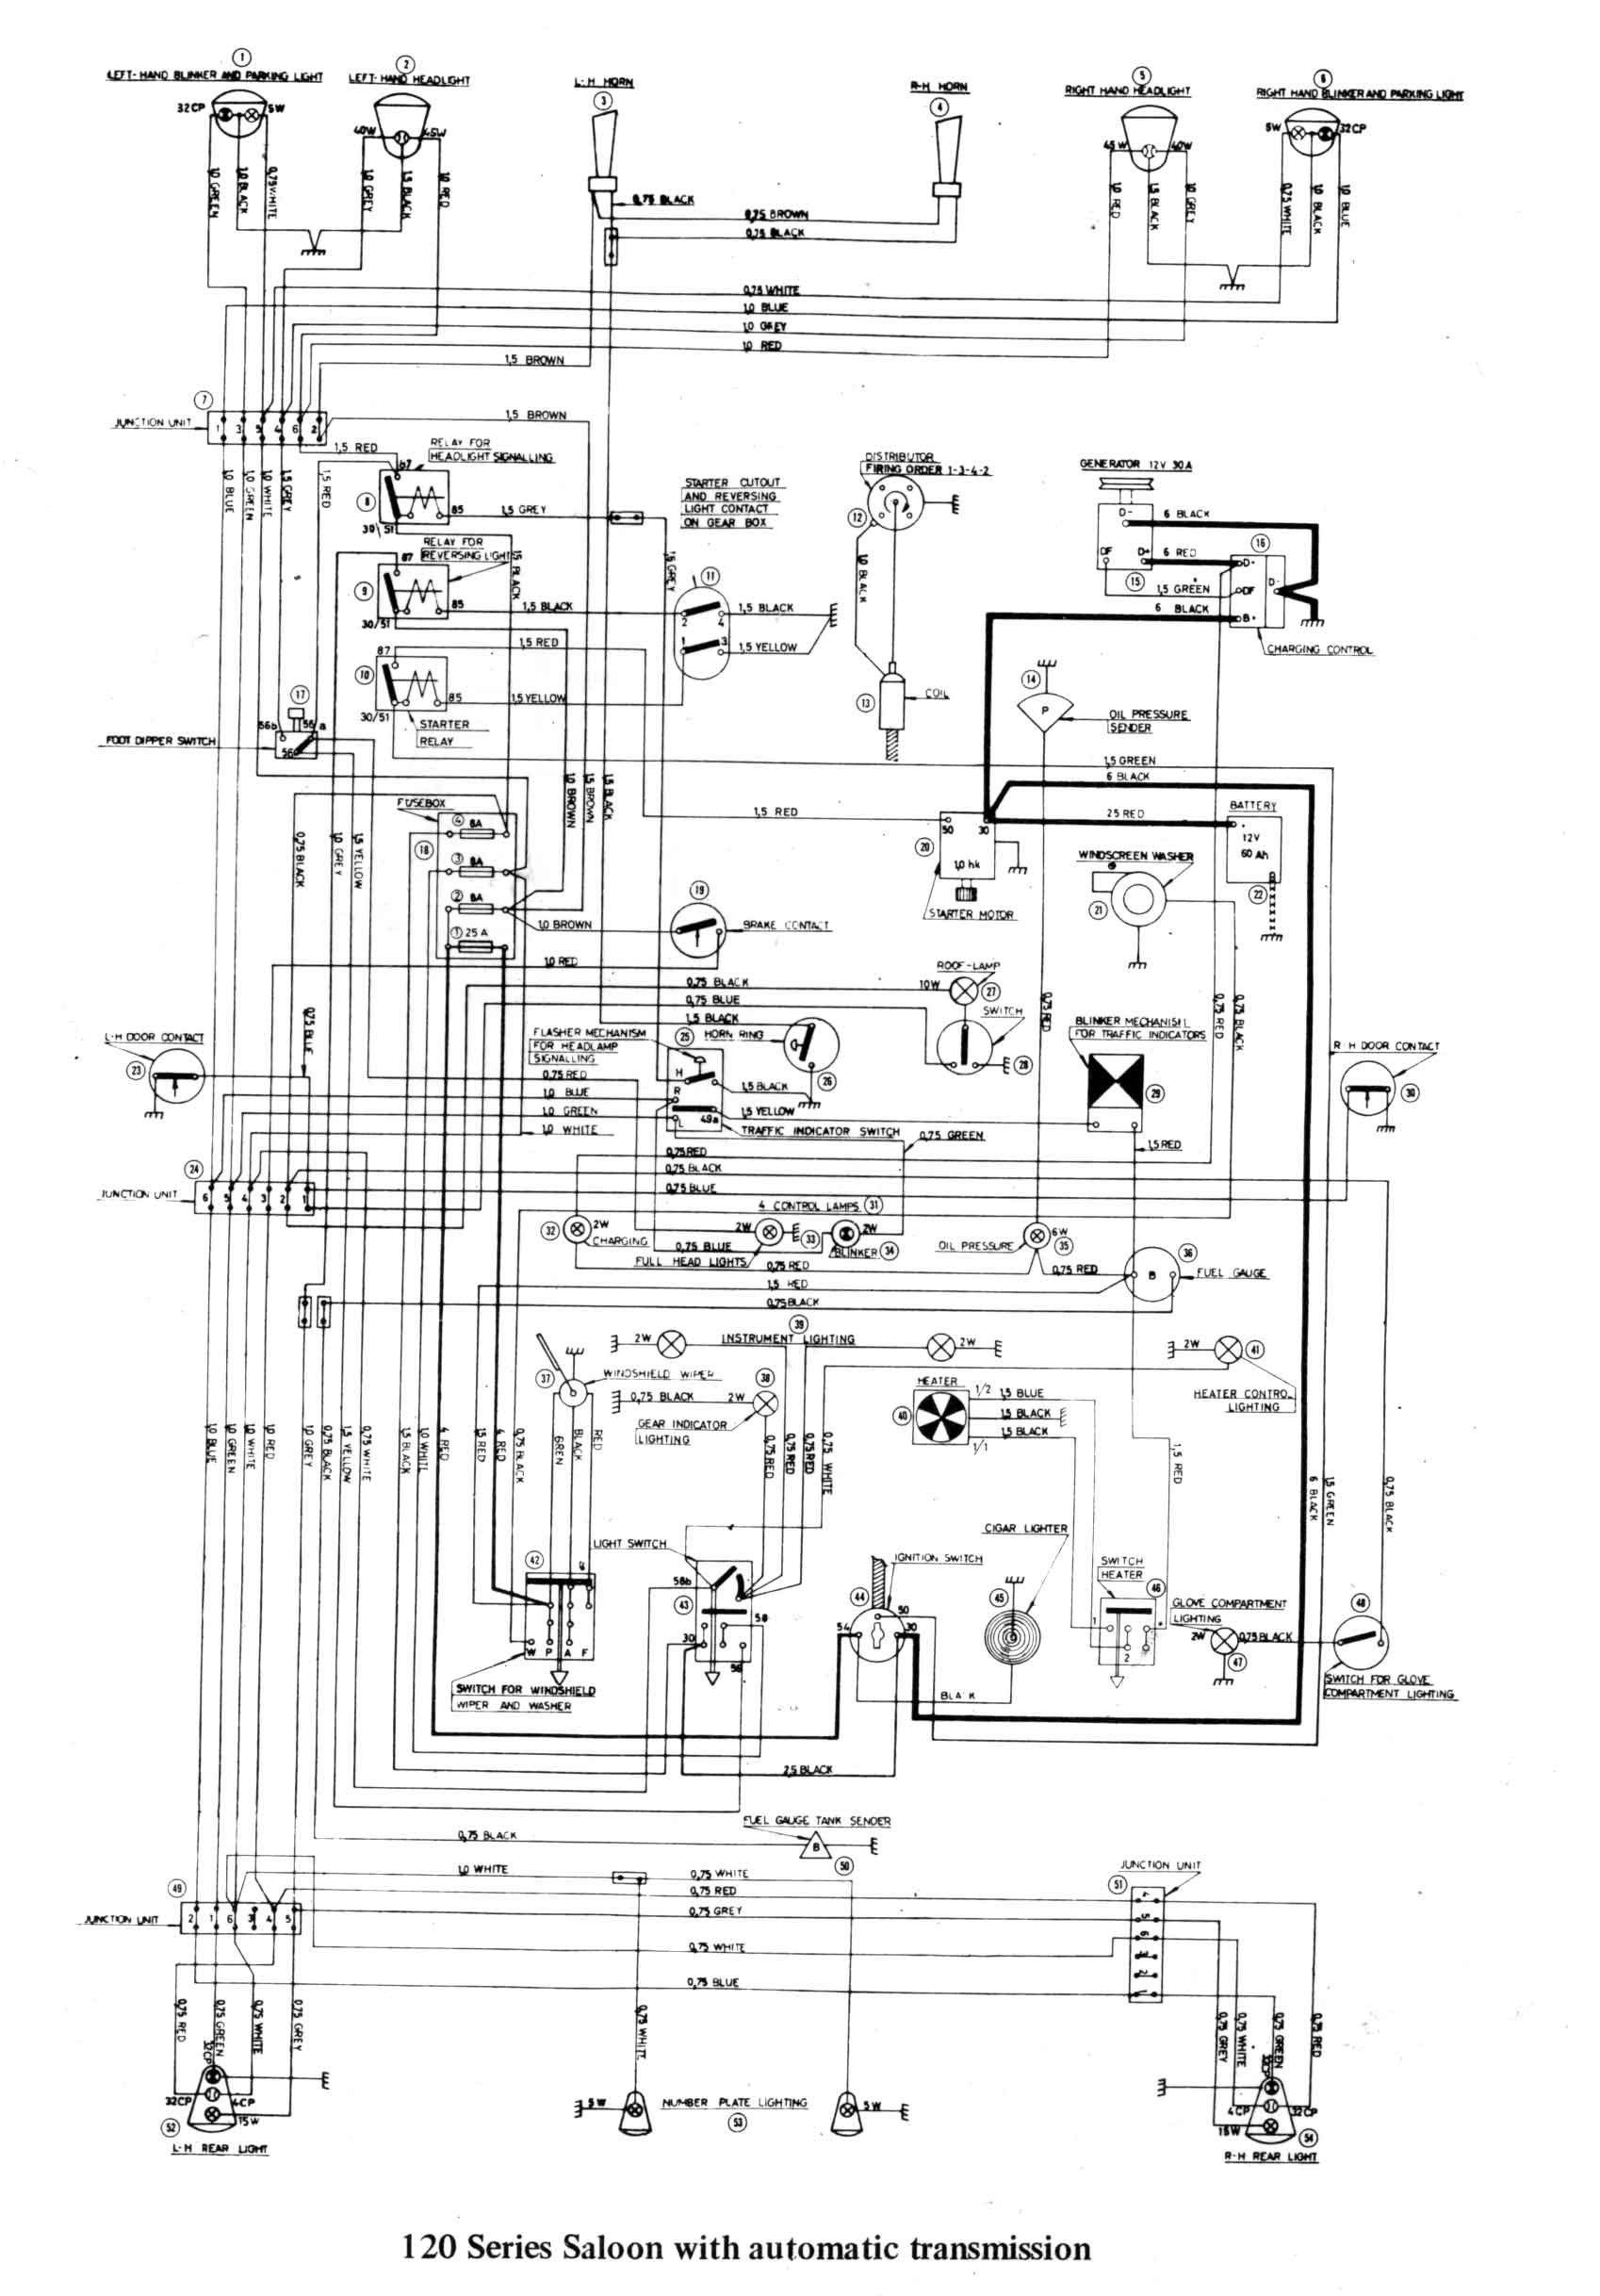 1995 ford f150 fuel pump wiring diagram unique